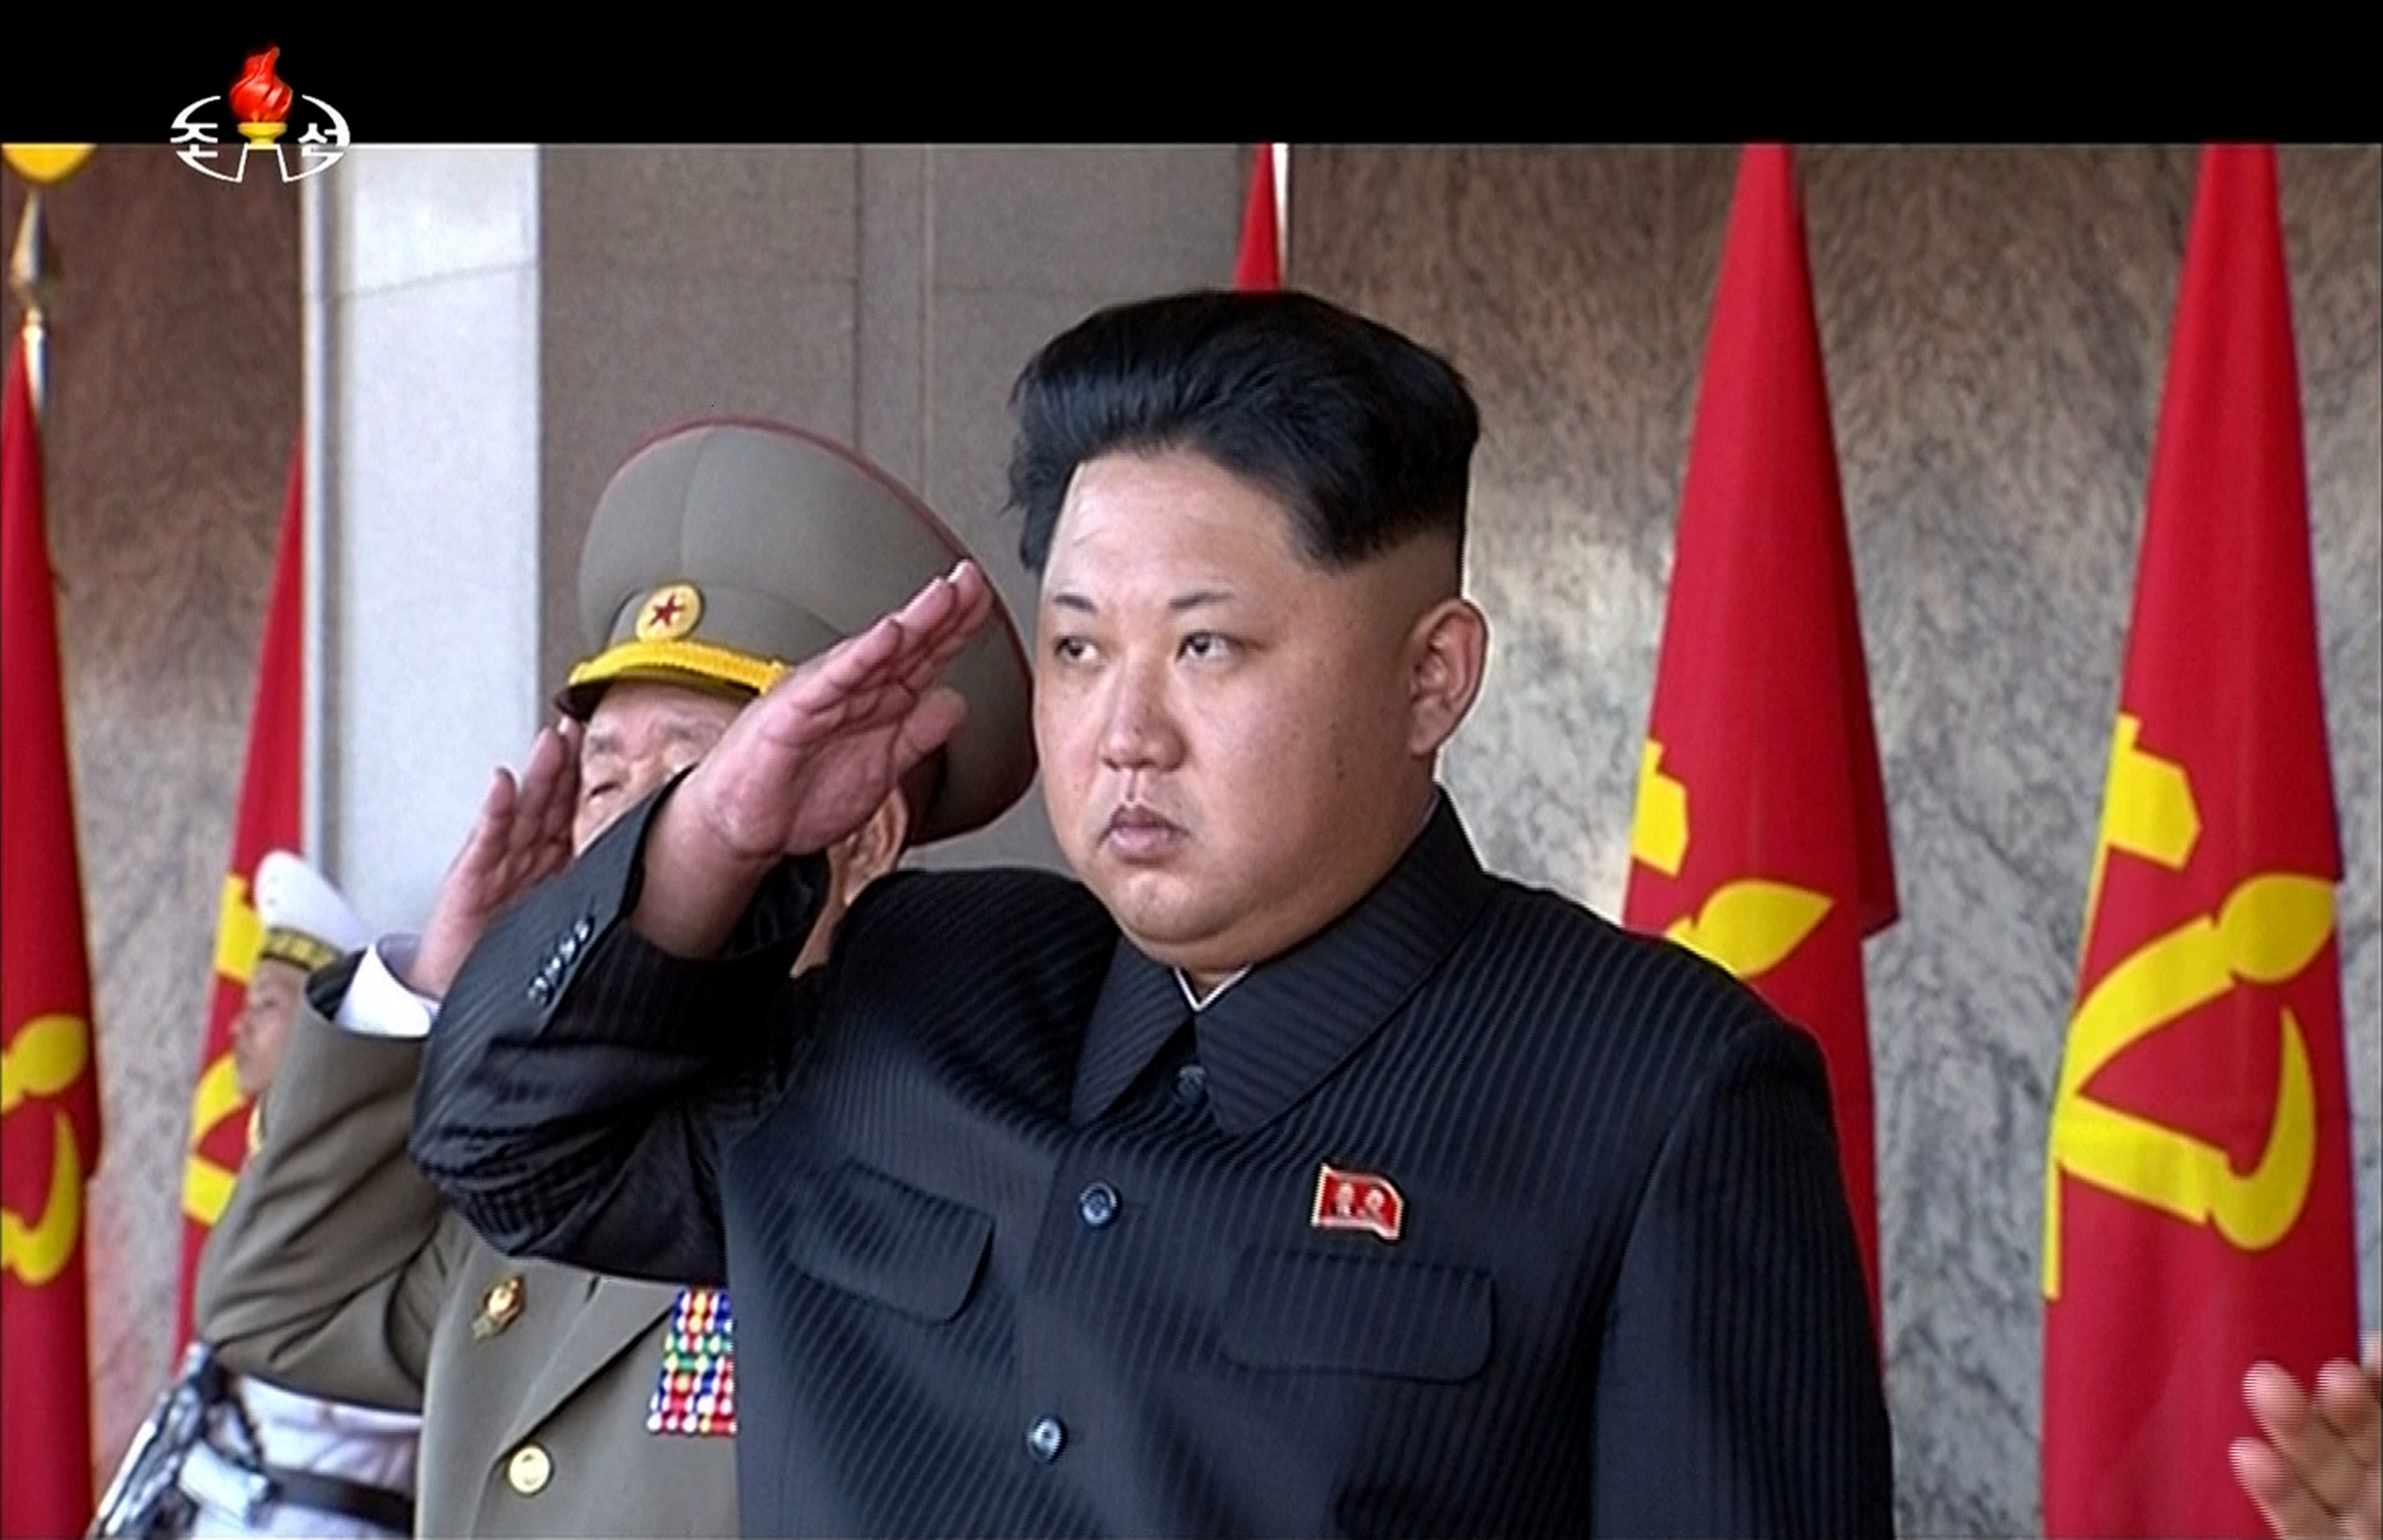 In this image made from video, North Korean leader Kim Jong Un salutes during the ceremony to mark the 70th anniversary of the country's ruling party in Pyongyang, Oct. 10, 2015.